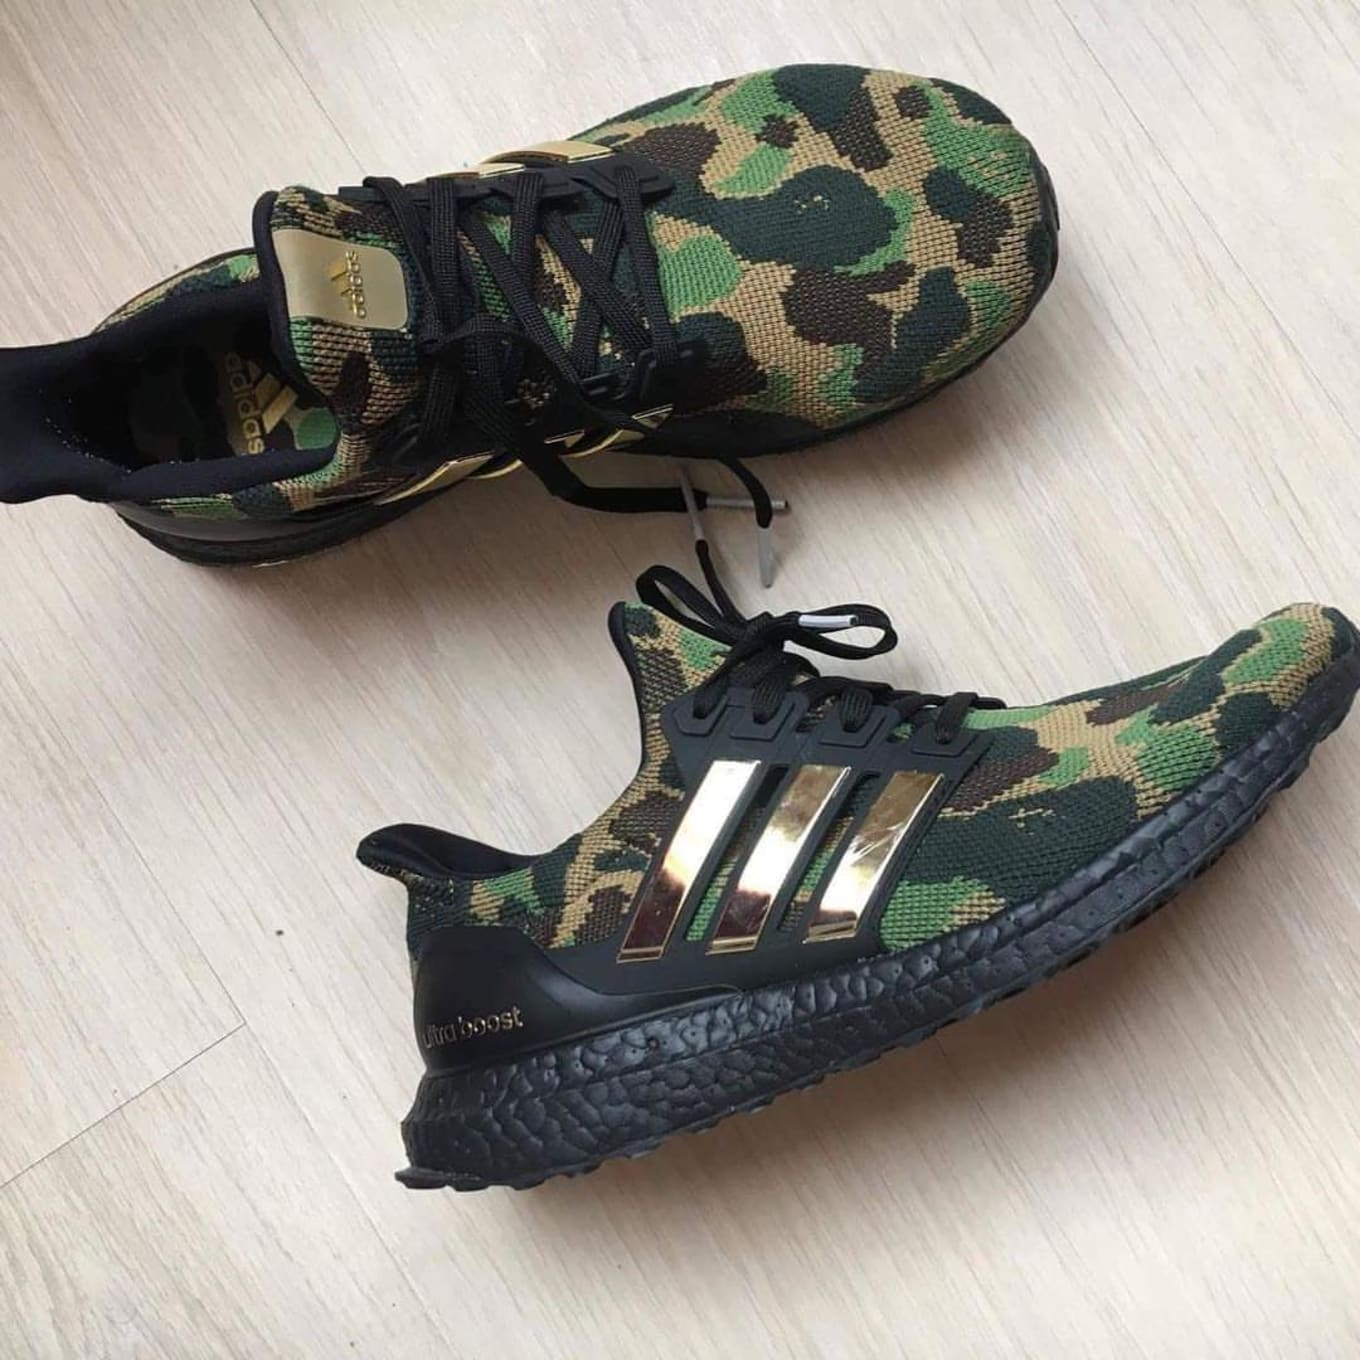 0e1a105693f Bape x Adidas Ultra Boost Collaboration Release Date